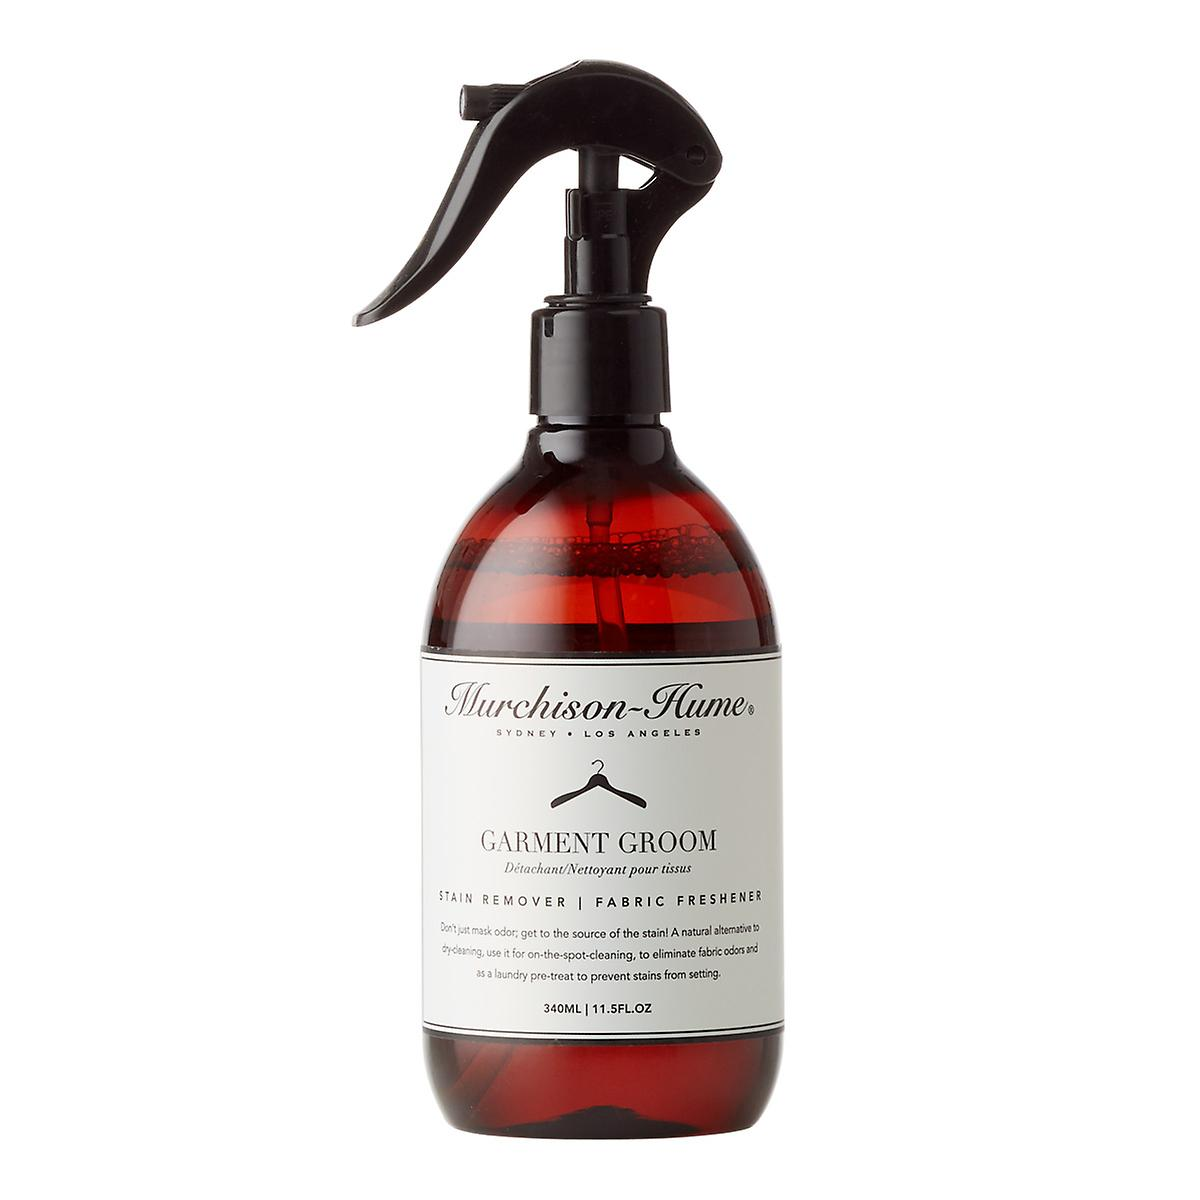 Murchison-Hume 11.5 oz. Garment Groom Clothing Spray